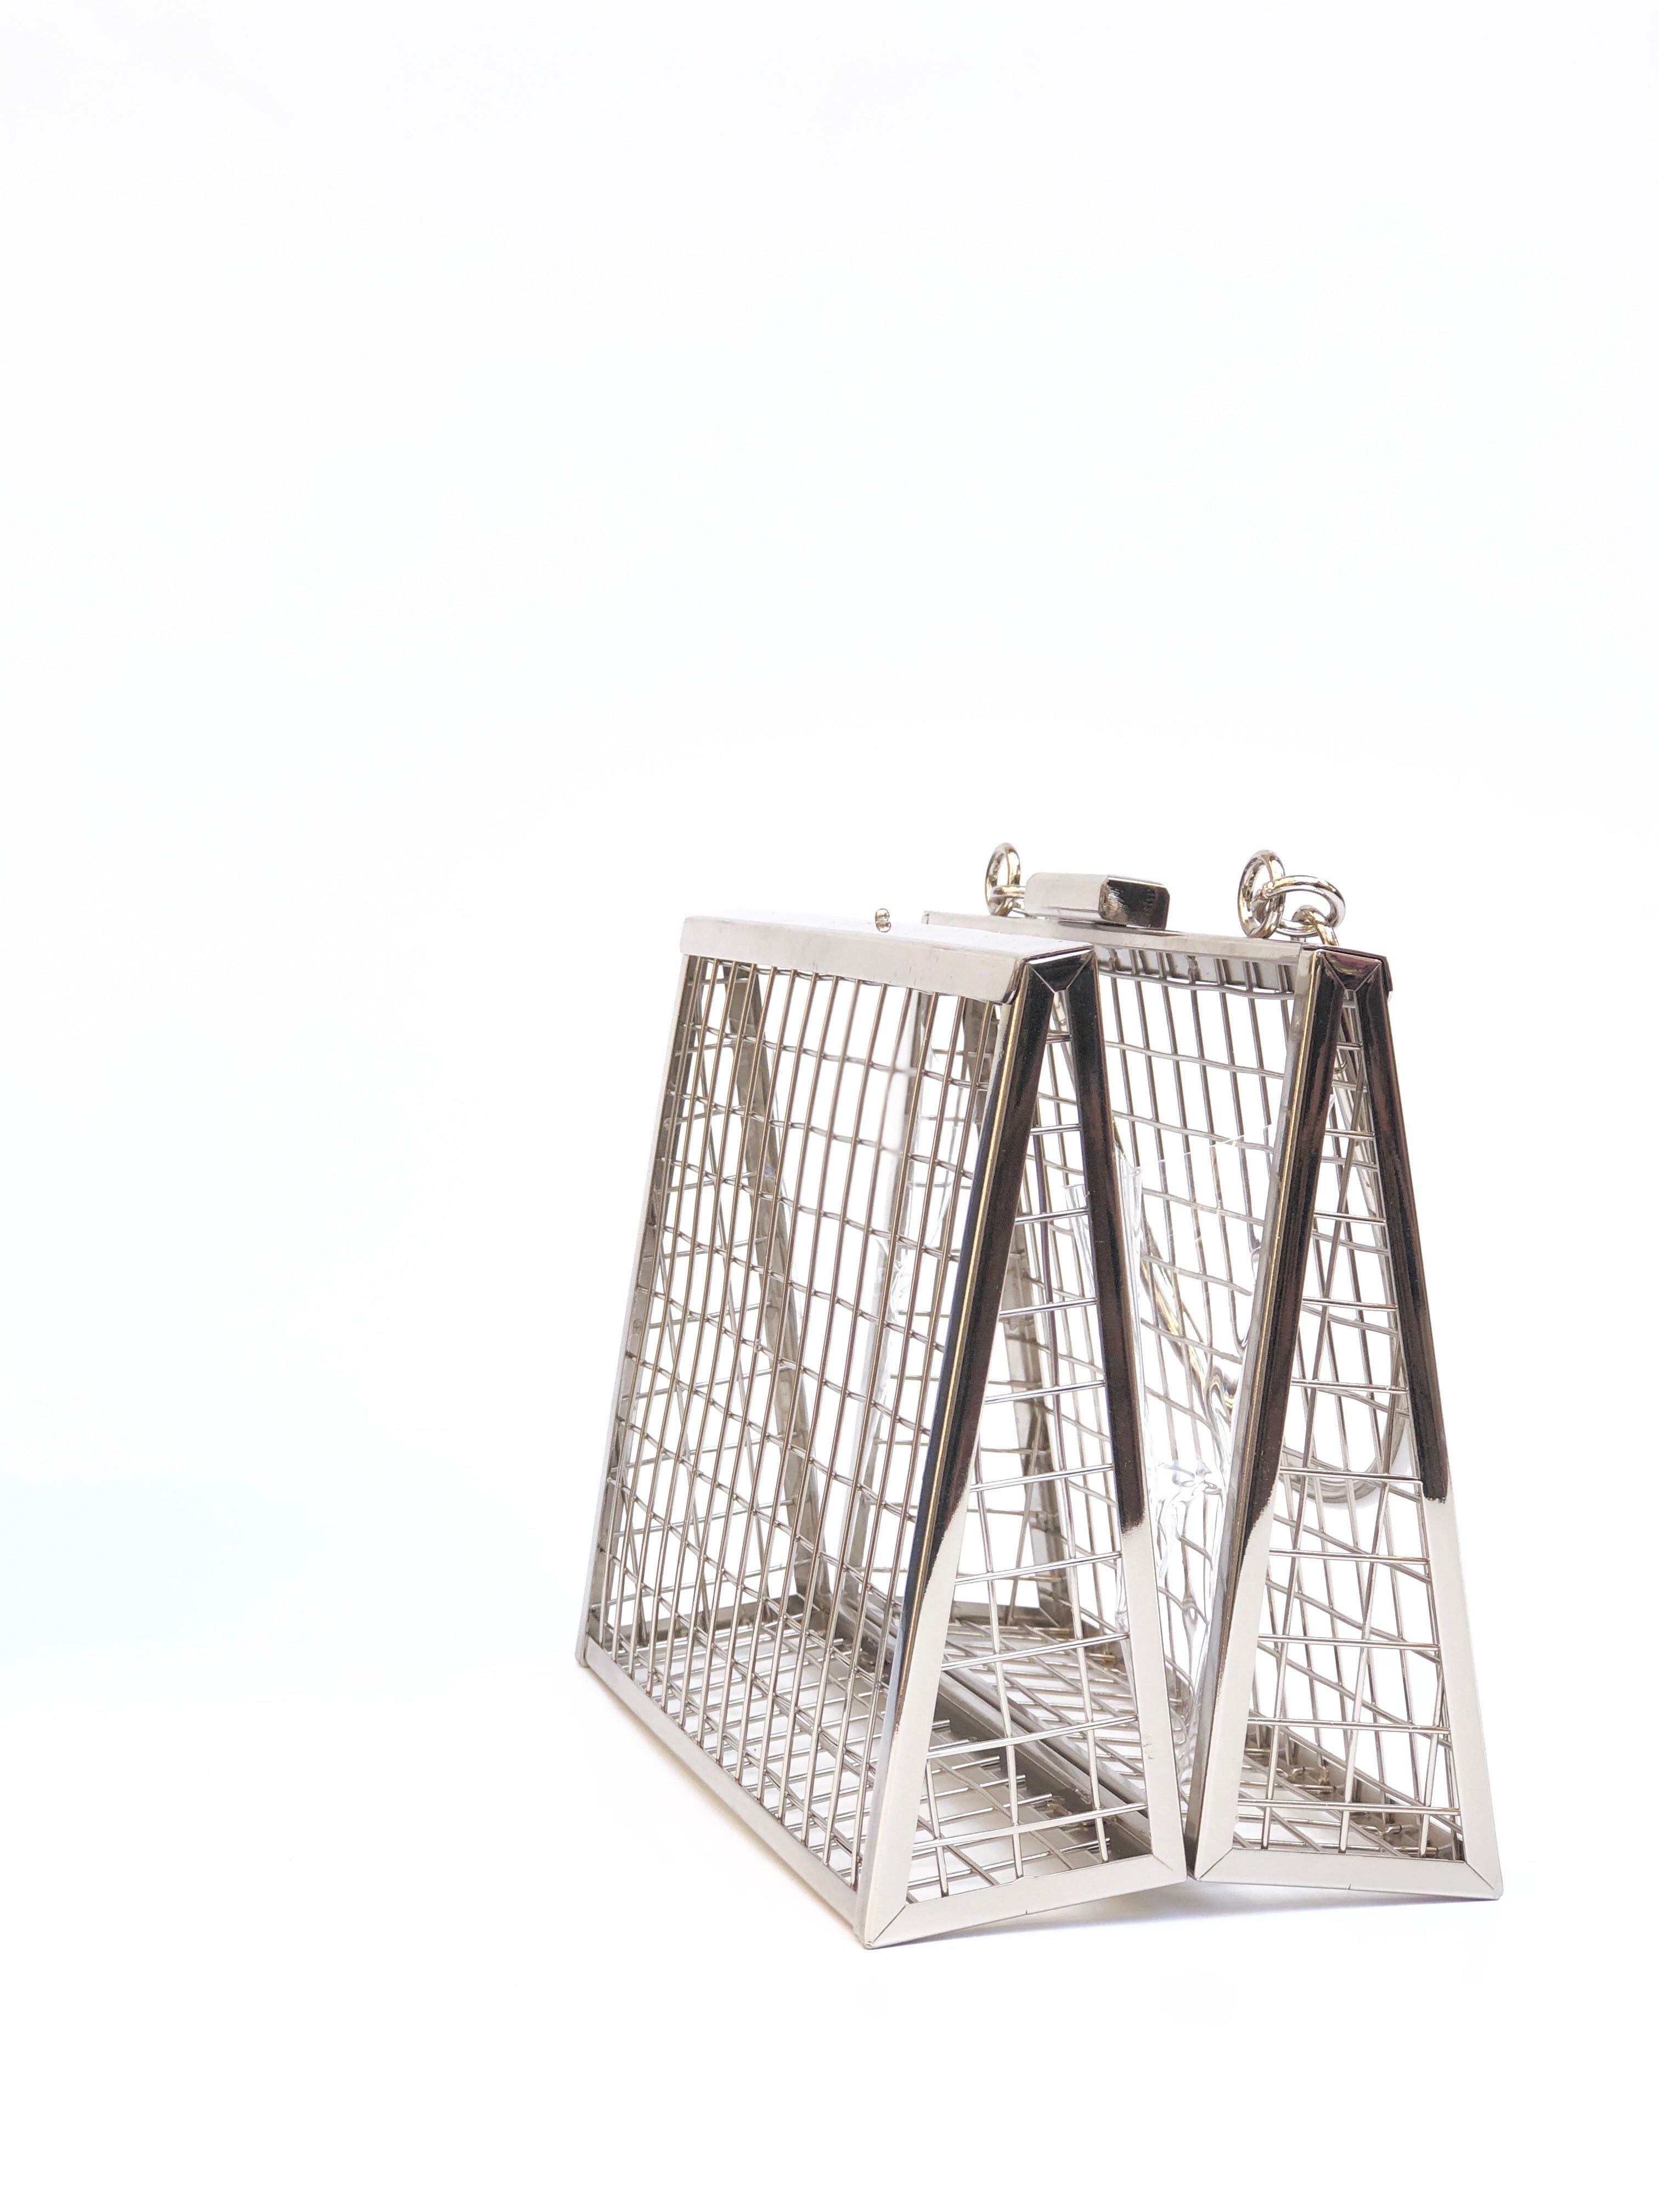 CAGE METALLIC CLUTCH BAG